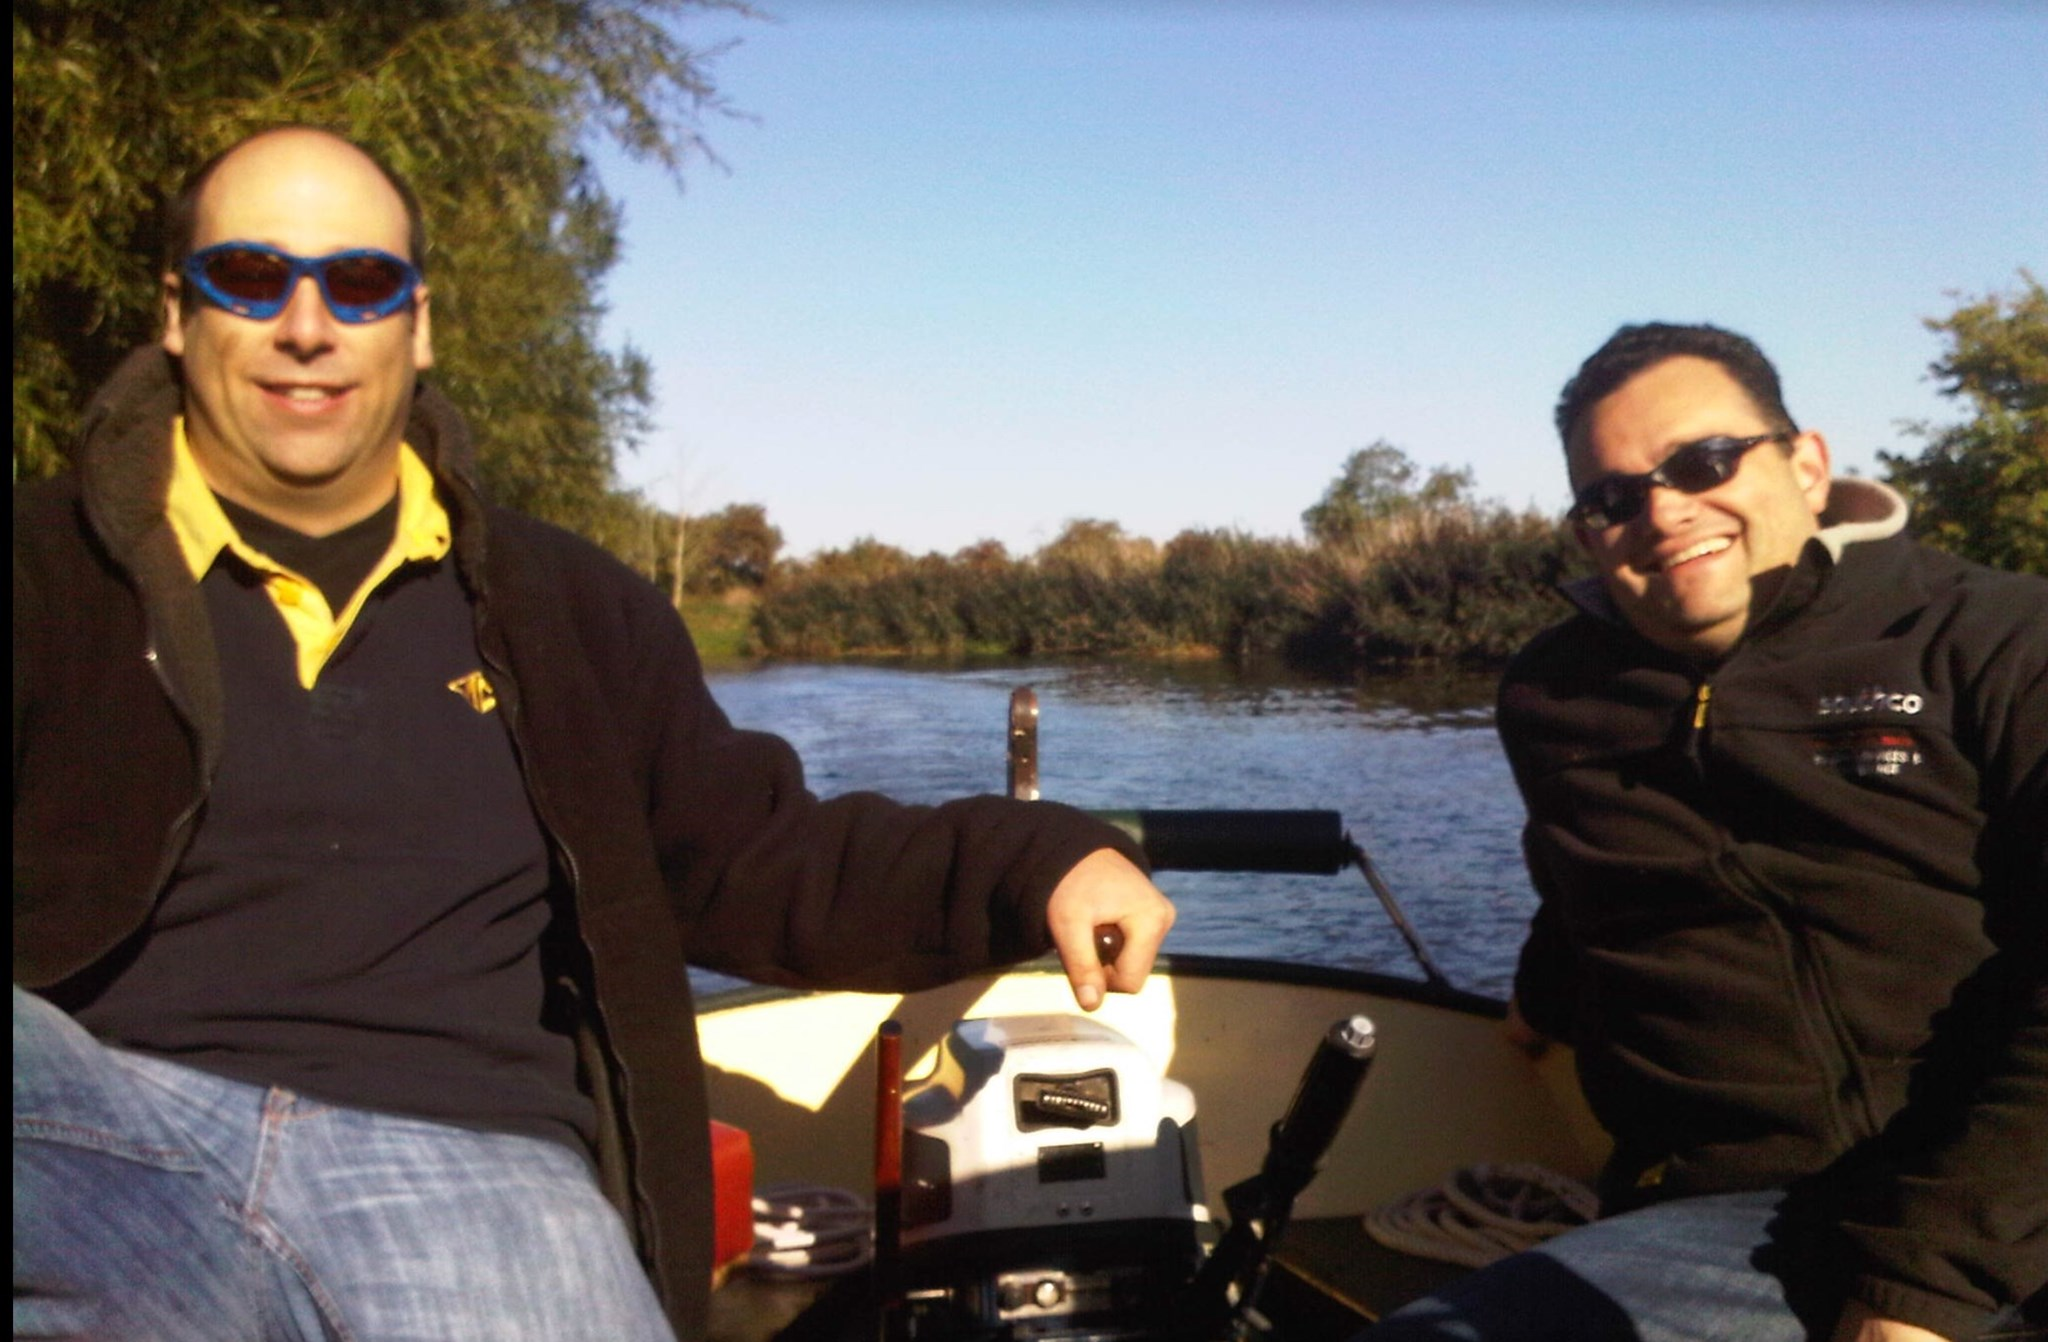 A summer afternoon on the River Avon, We got in trouble for speeding!